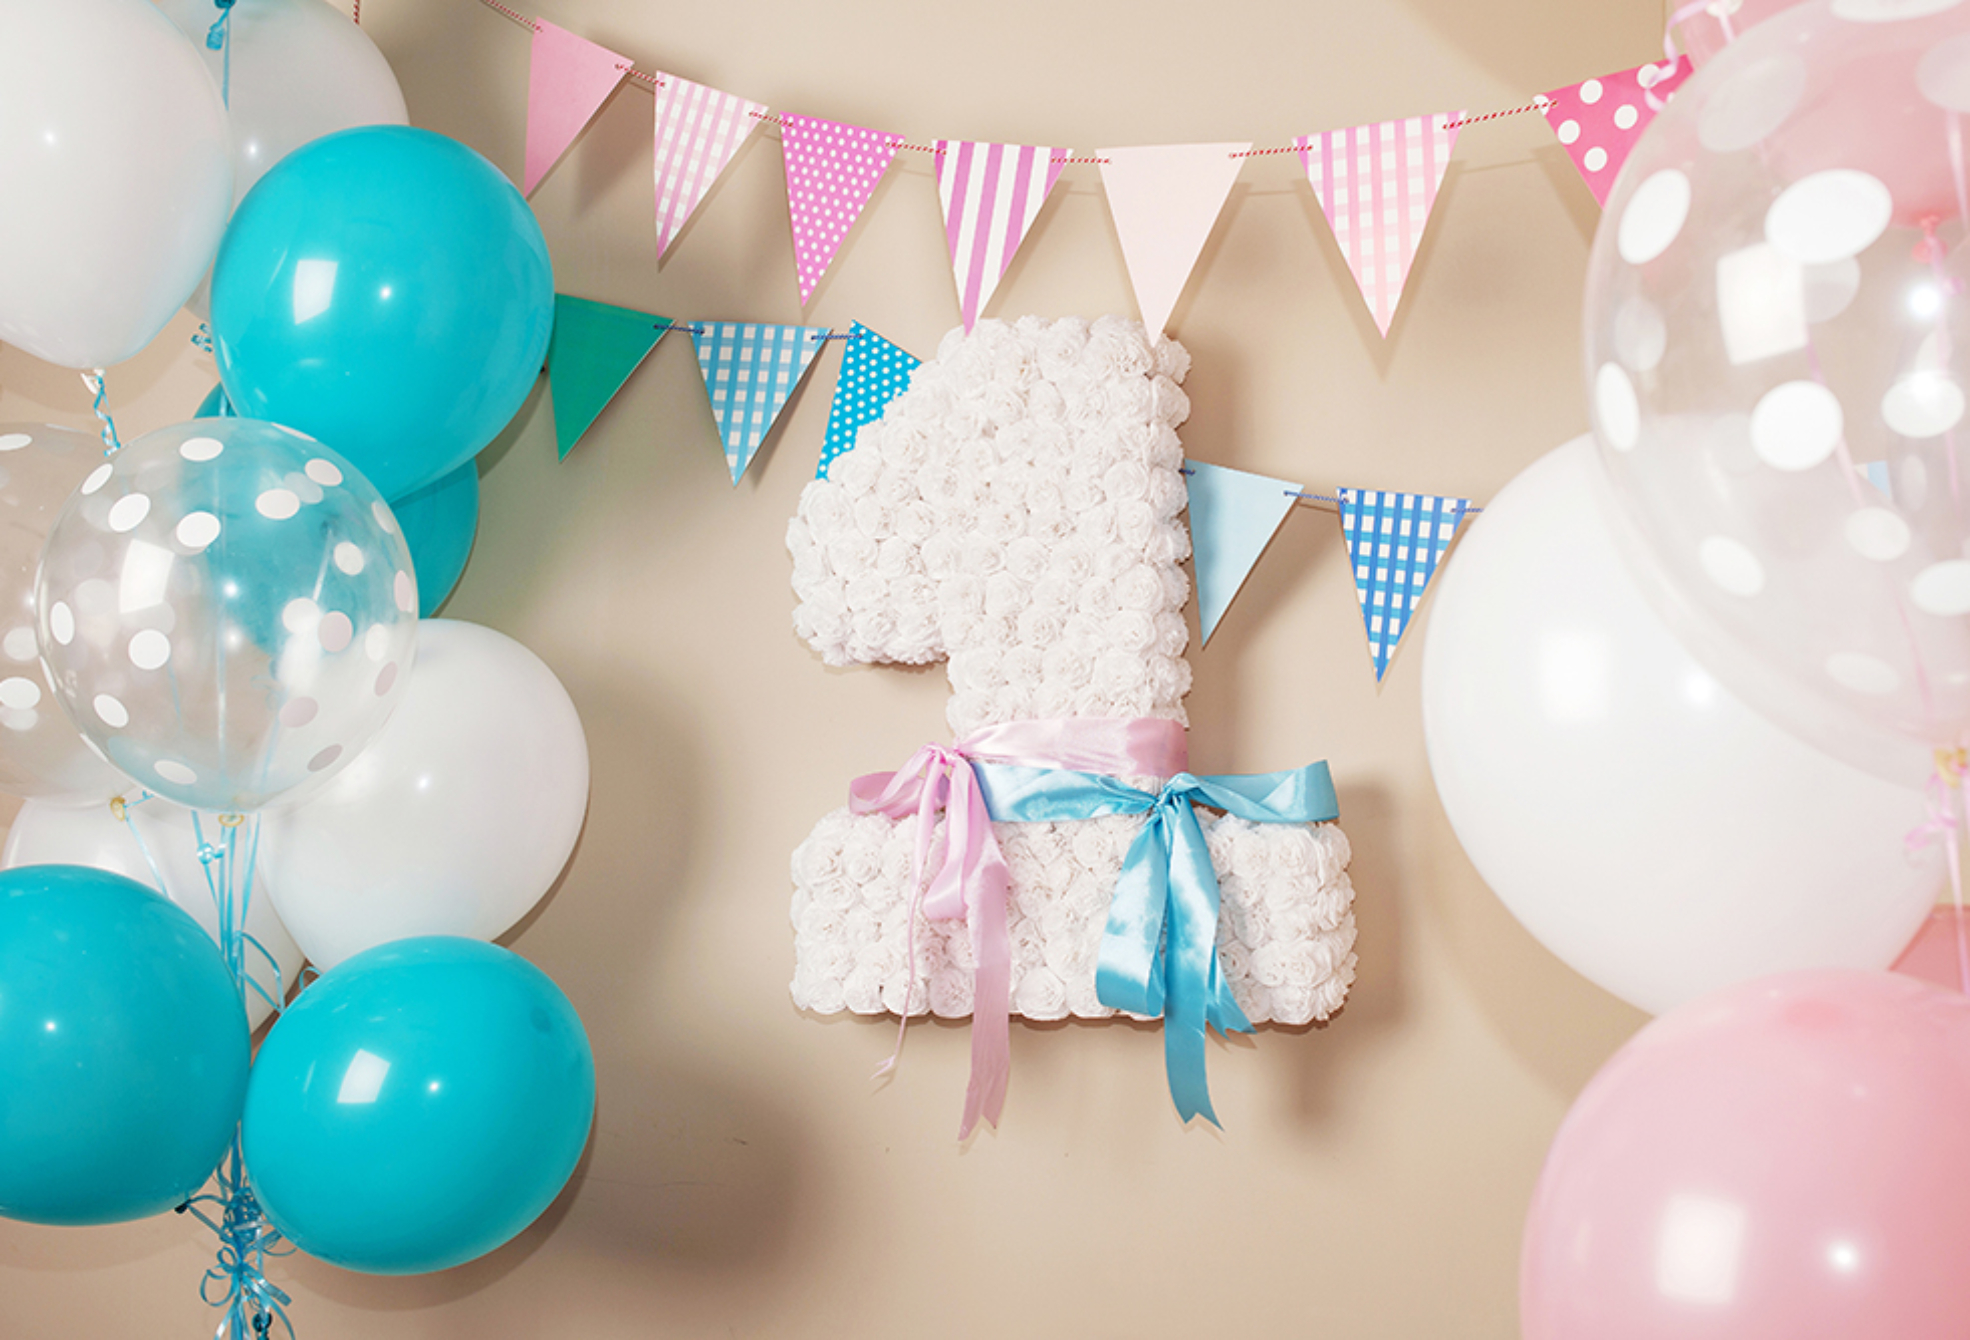 Decorated number 1 for a birthday. Happy birthday one year for twins. White, pink, blue colors